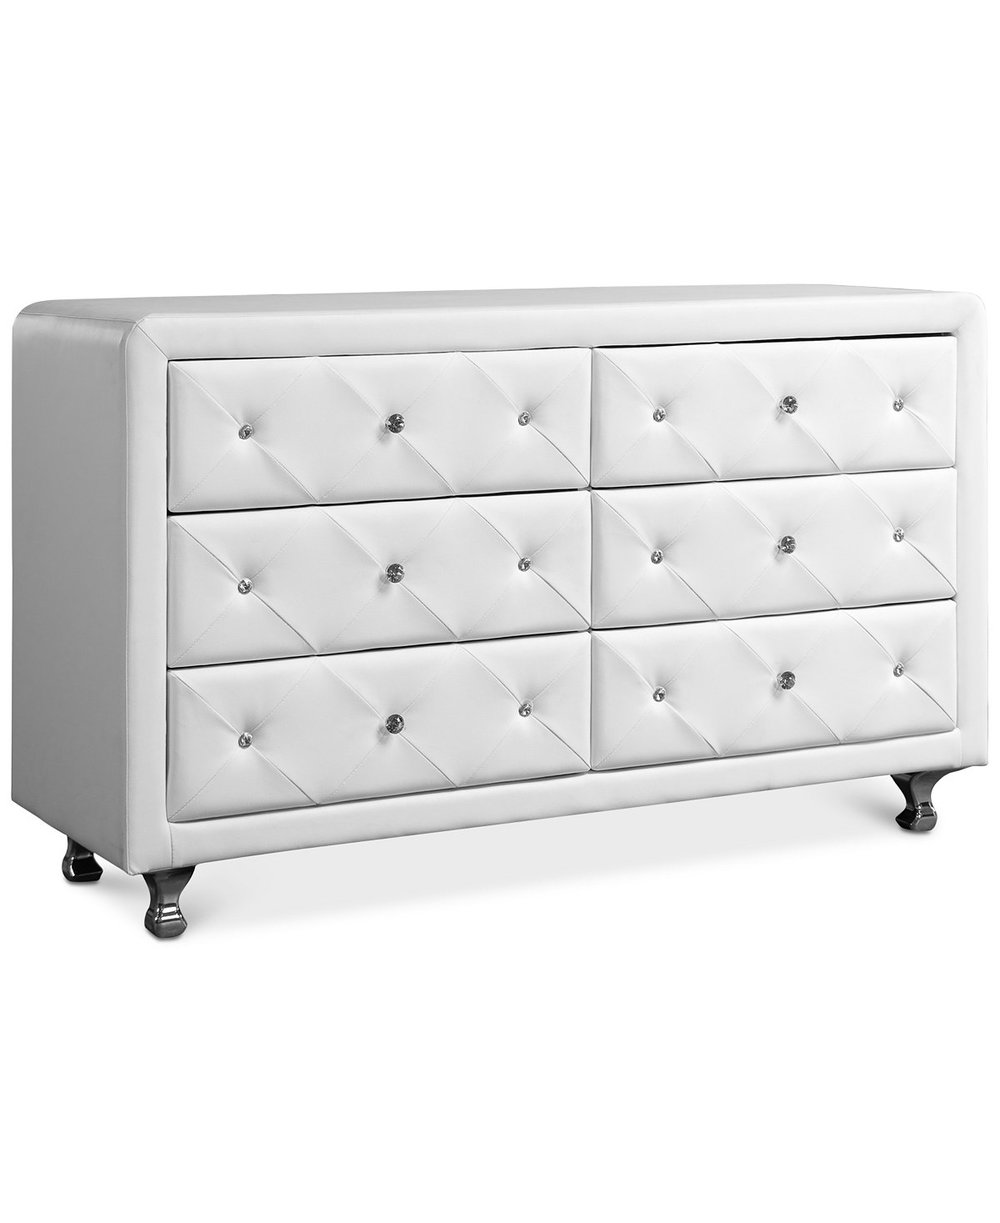 White Chest of Drawers - The last check Monroe purportedly wrote was for a white dresser, which makes sense, the woman loved the hue! I was unable to find photos of the dresser she ordered, probably because it was never delivered. But this one is beautiful and has a Marilyn feel to it.